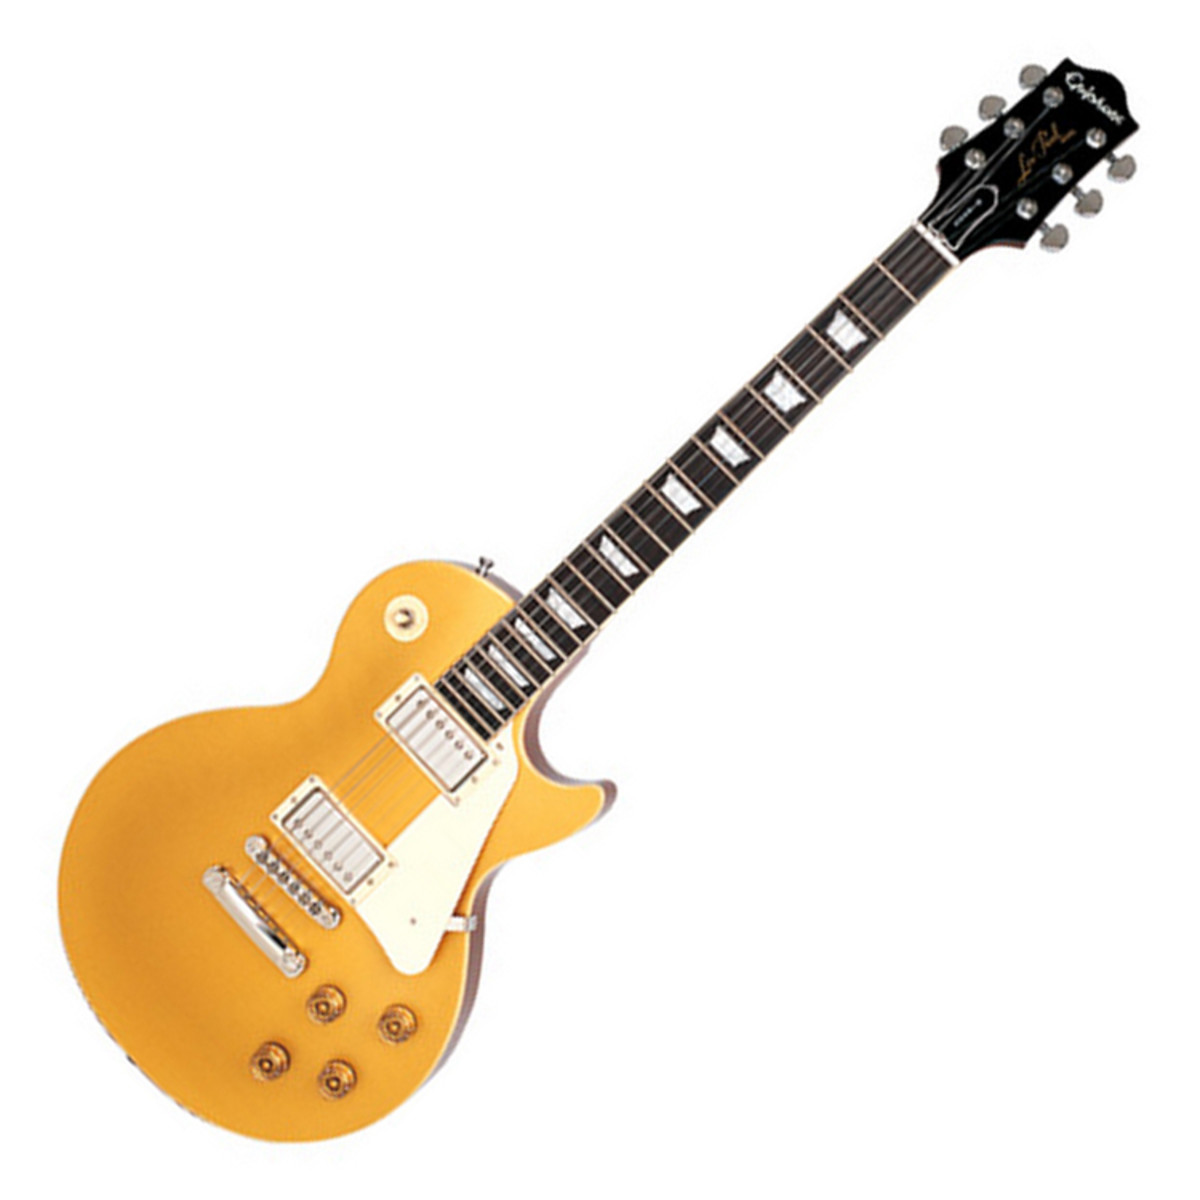 disc epiphone 1957 les paul standard gold top limited edition at gear4music. Black Bedroom Furniture Sets. Home Design Ideas